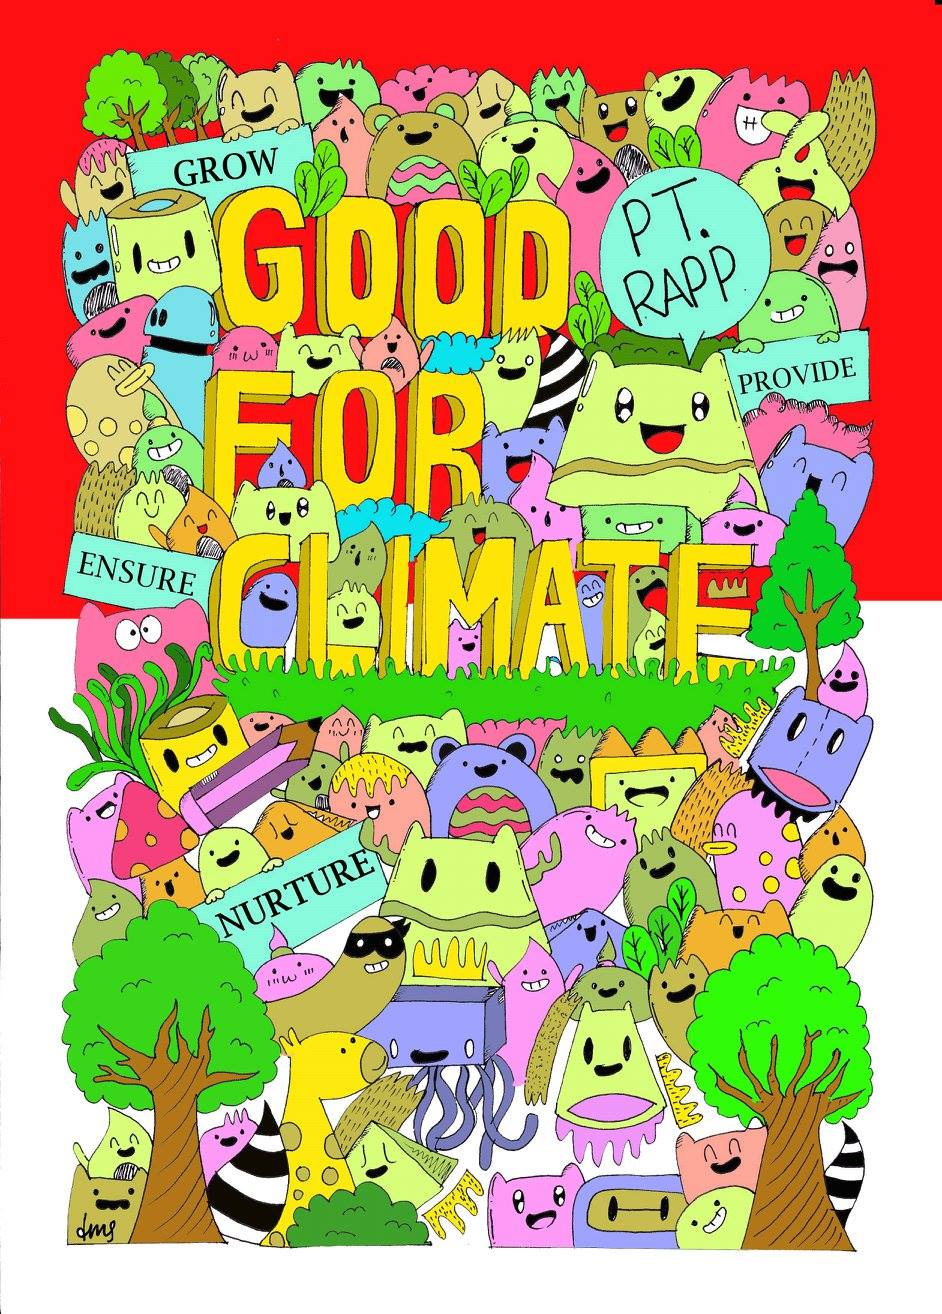 APRIL Canvasses Creative Expressions in Caring for the Climate in Doodle Competition